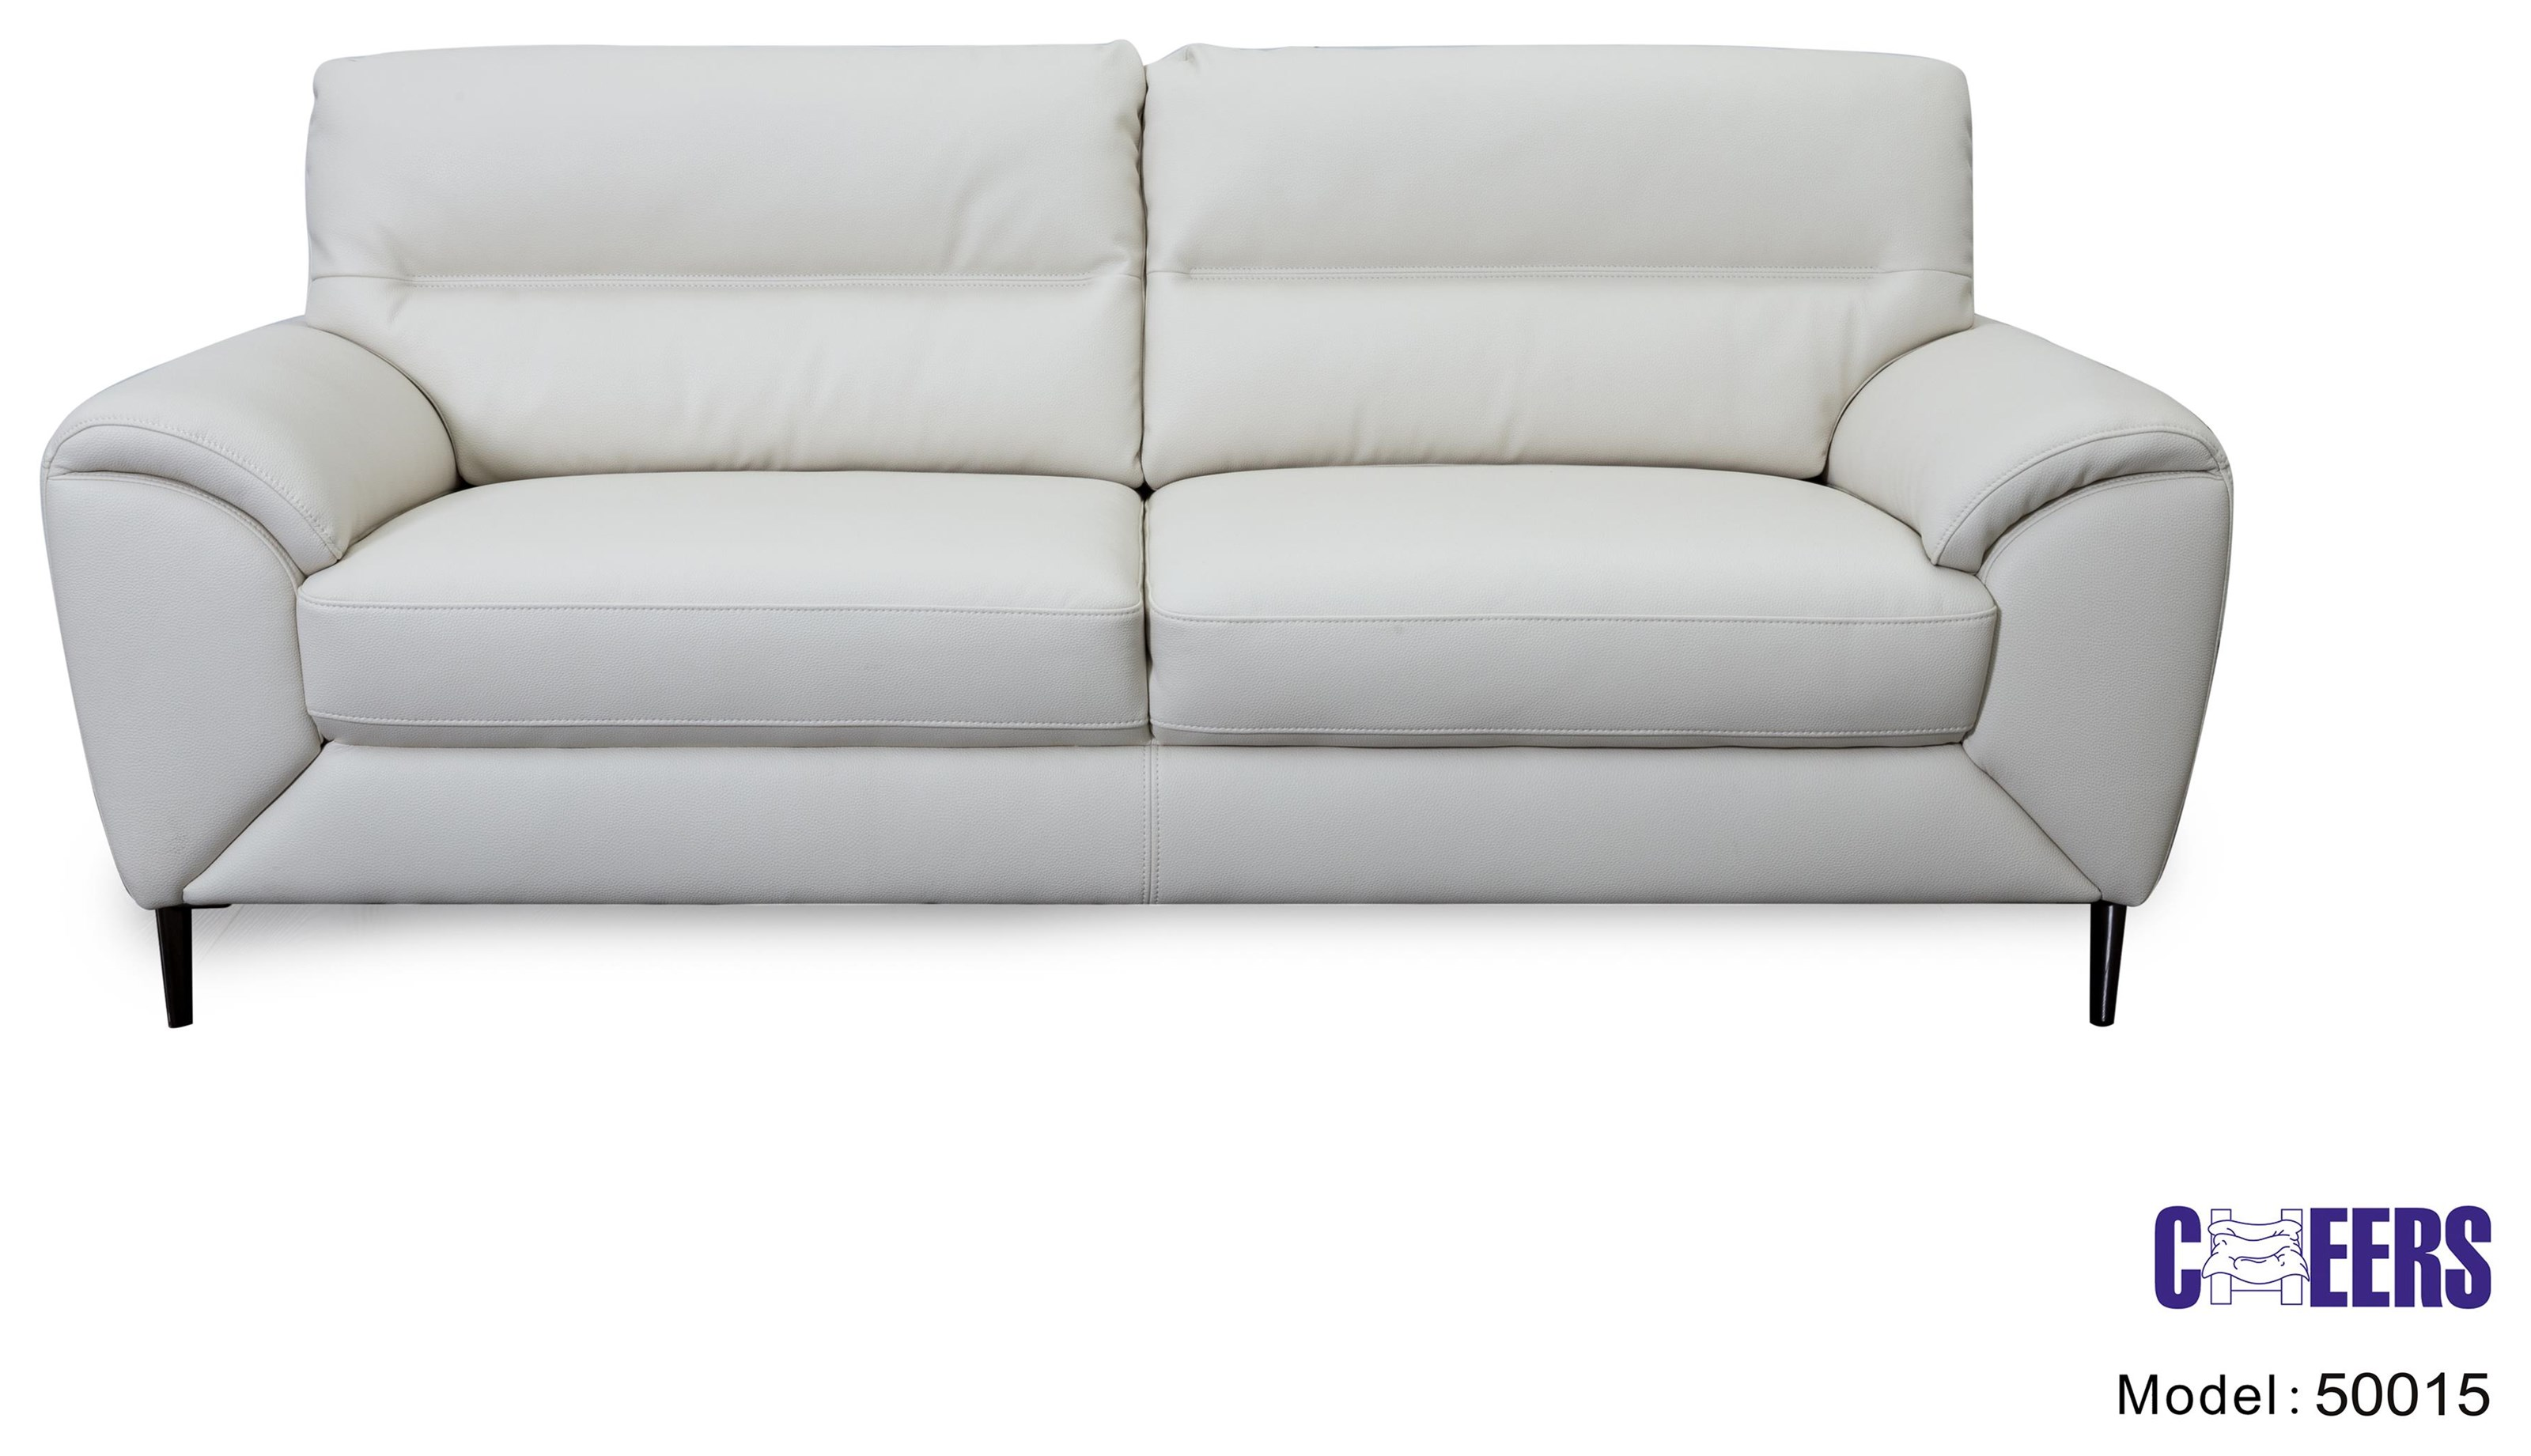 50015 Sofa by Cheers at Westrich Furniture & Appliances